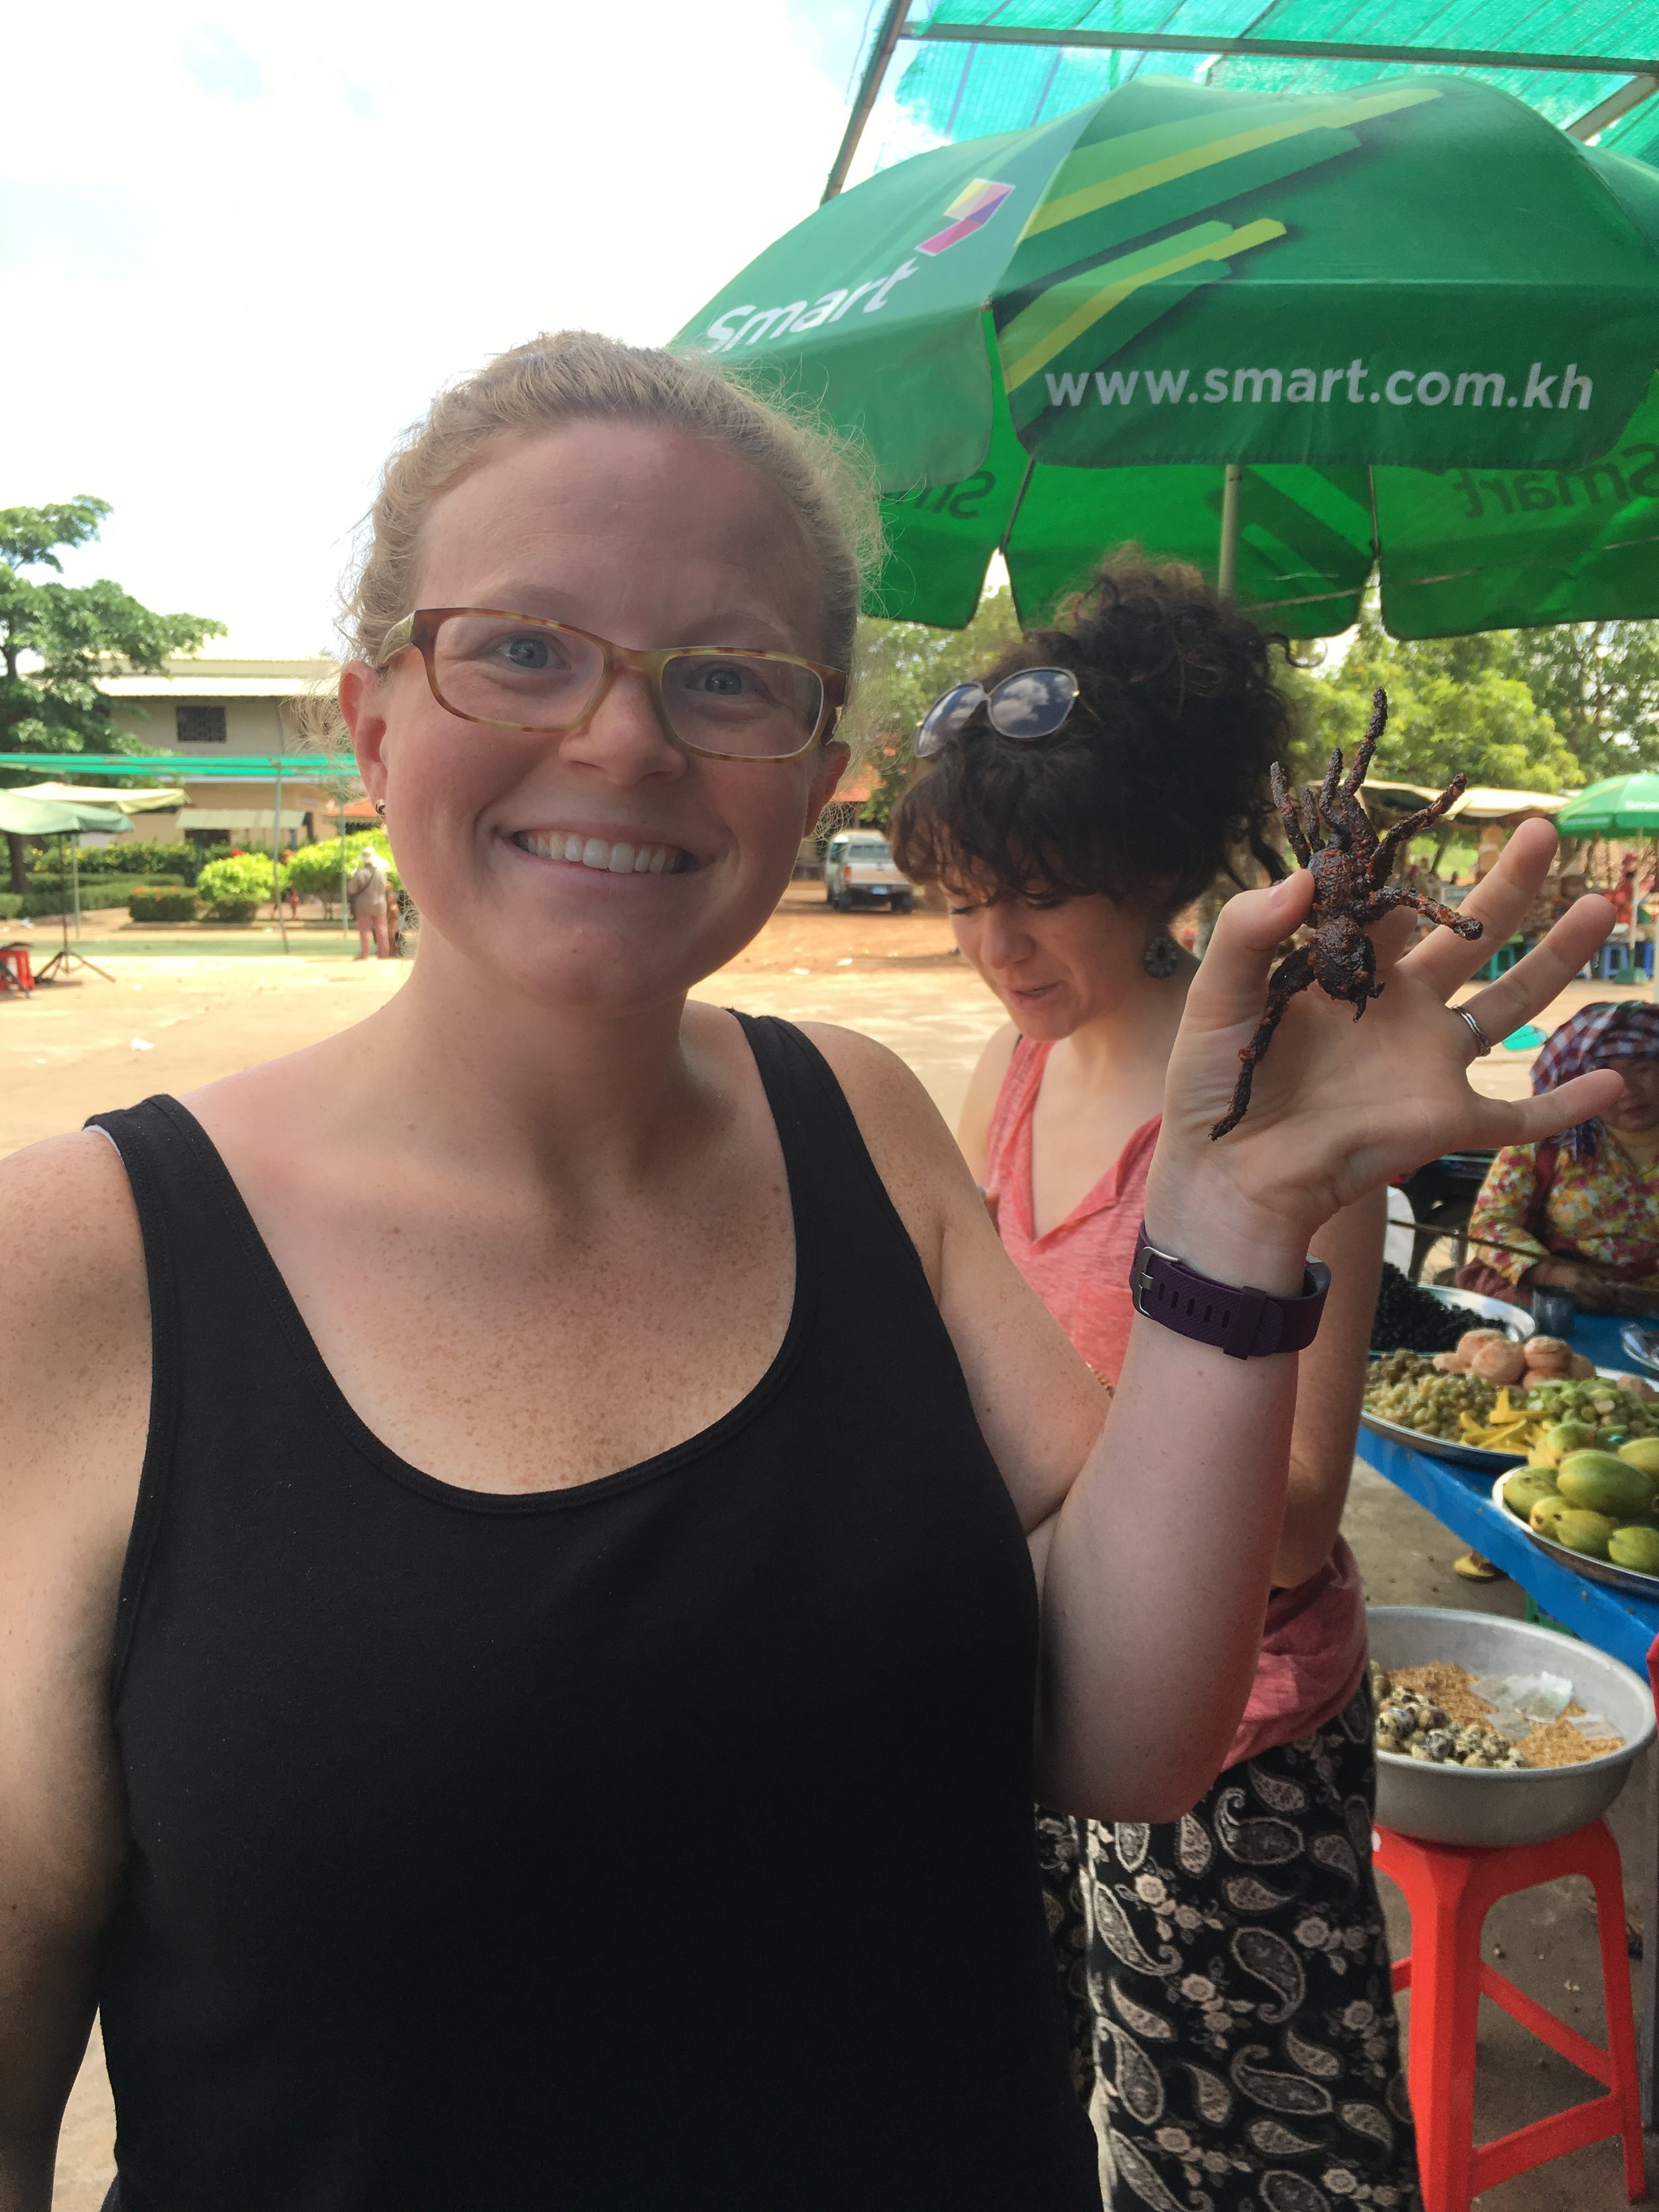 Travel makes you do weird things like: eat tarantula in Vietnam. Also, I really like posing with my food.